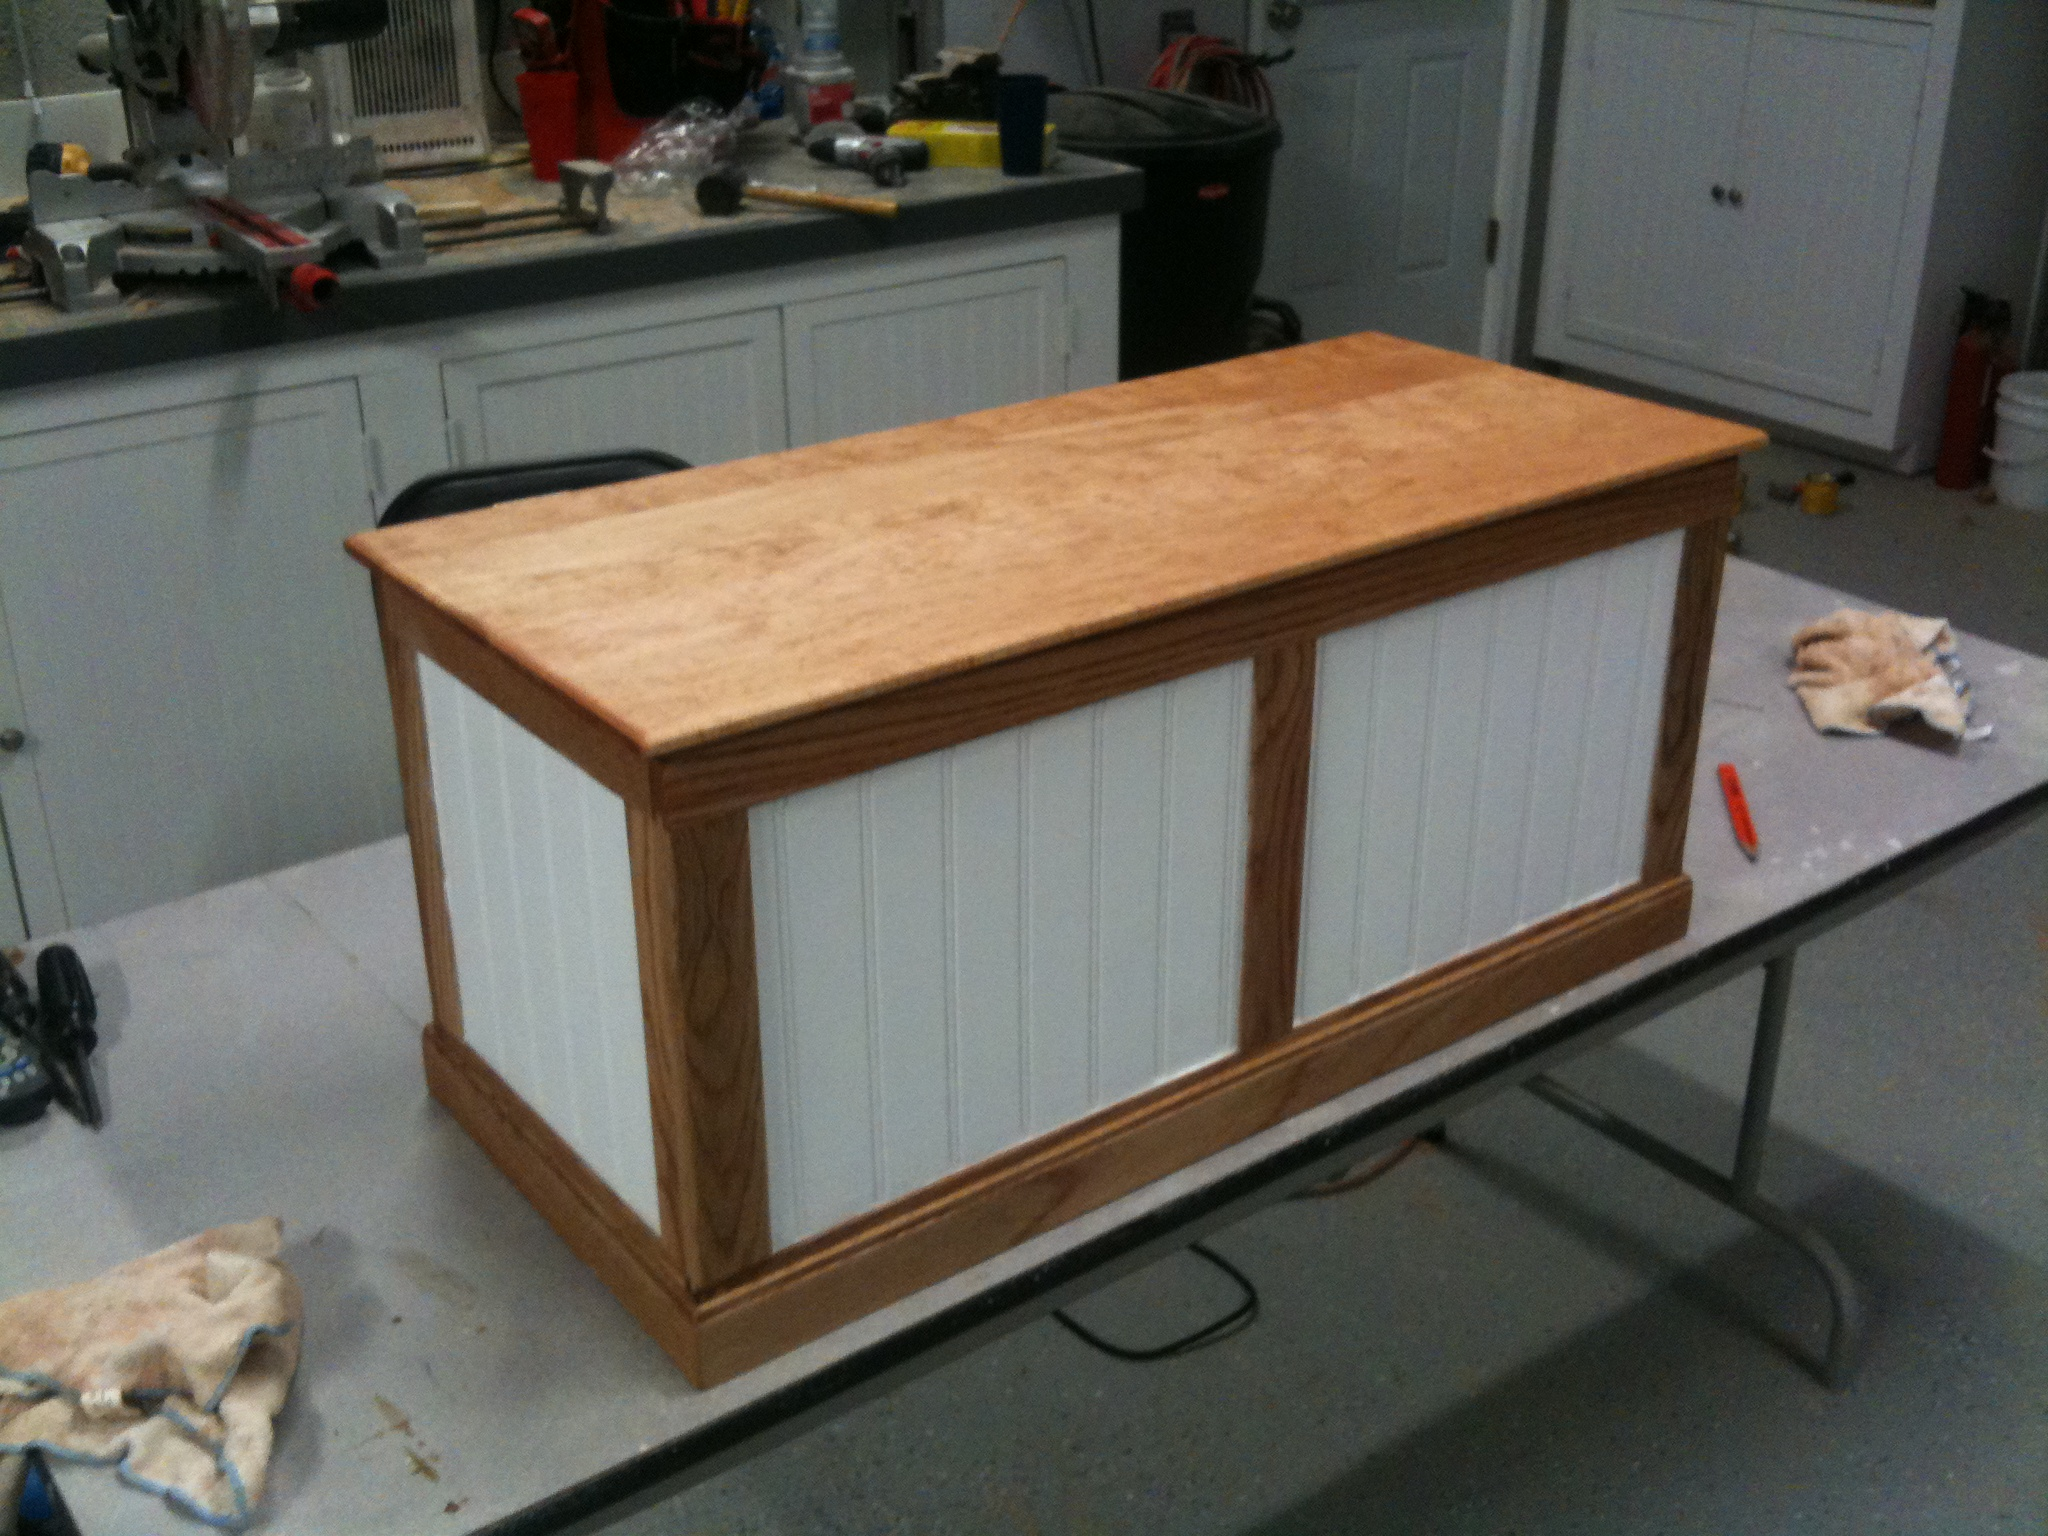 Nathanielu0027s Toy Box: First Project In The New Shop | Pennington Millworks Part 66